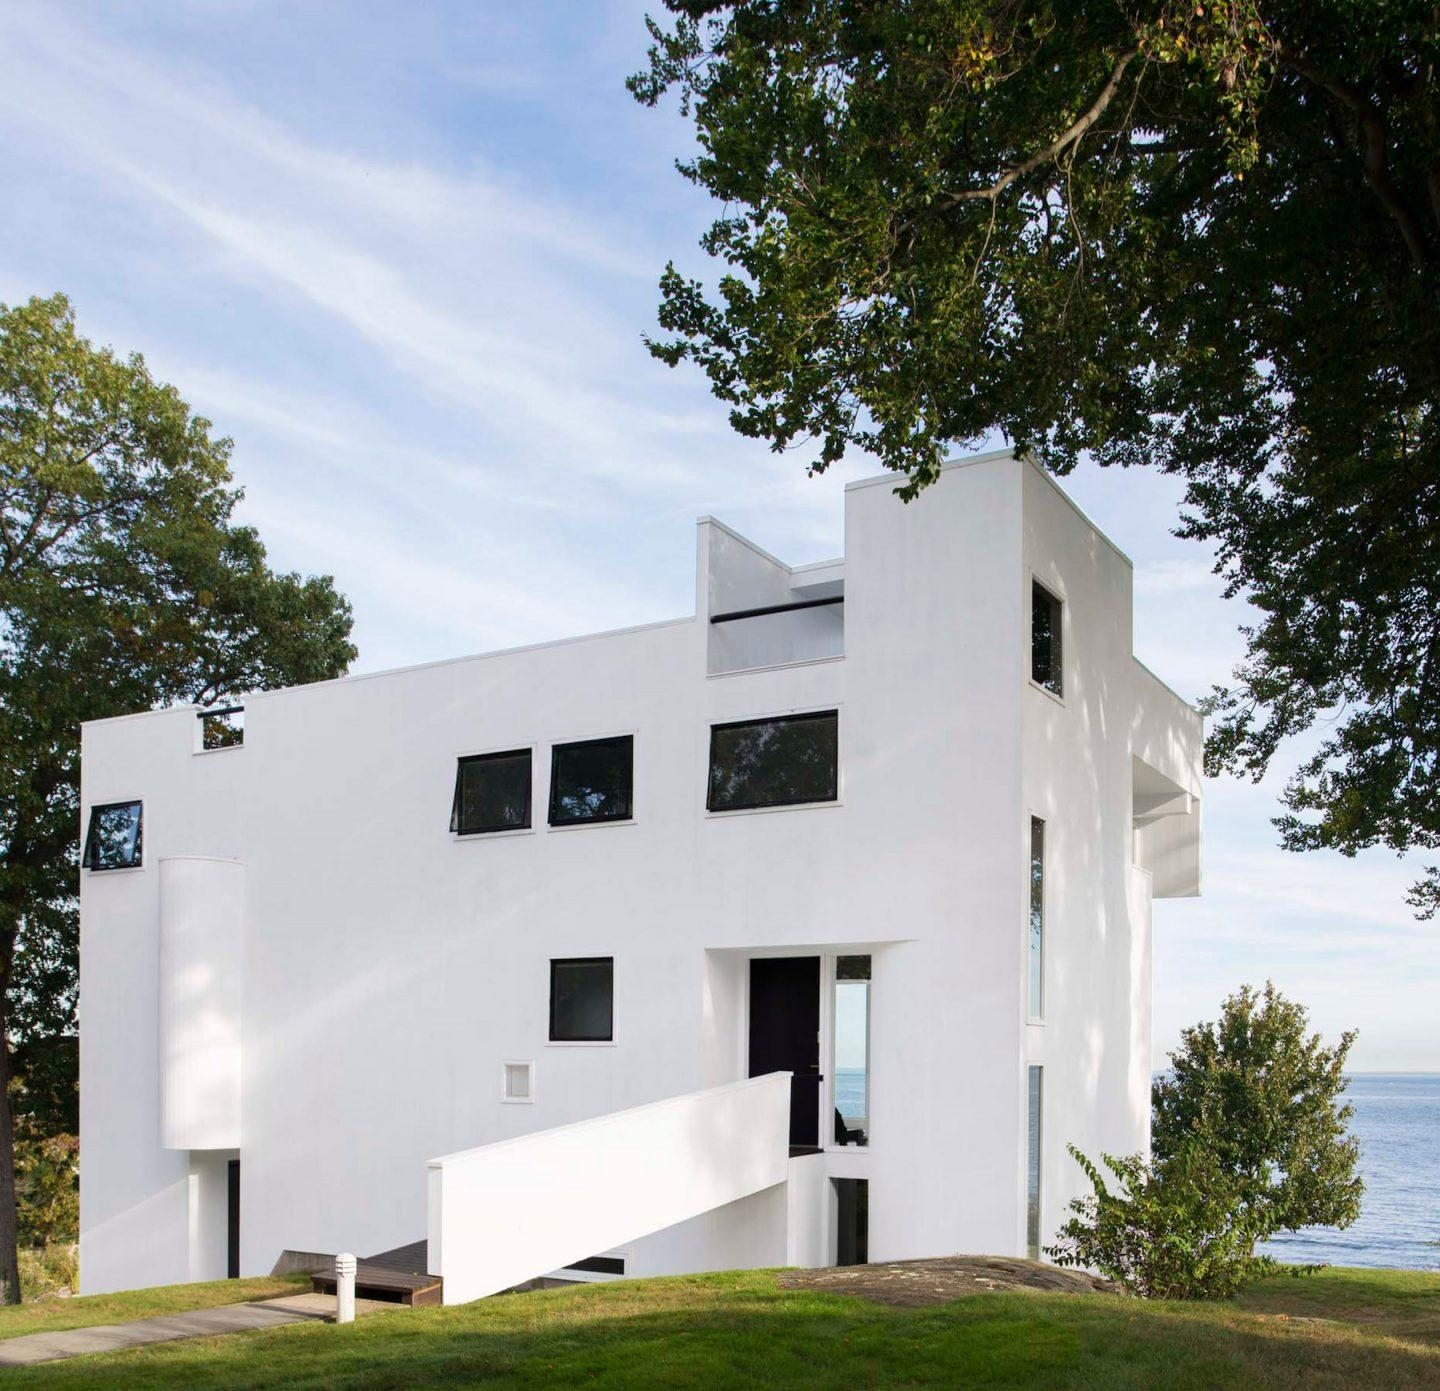 iGNANT-Architecture-Richard-Meier-Smith-House-002